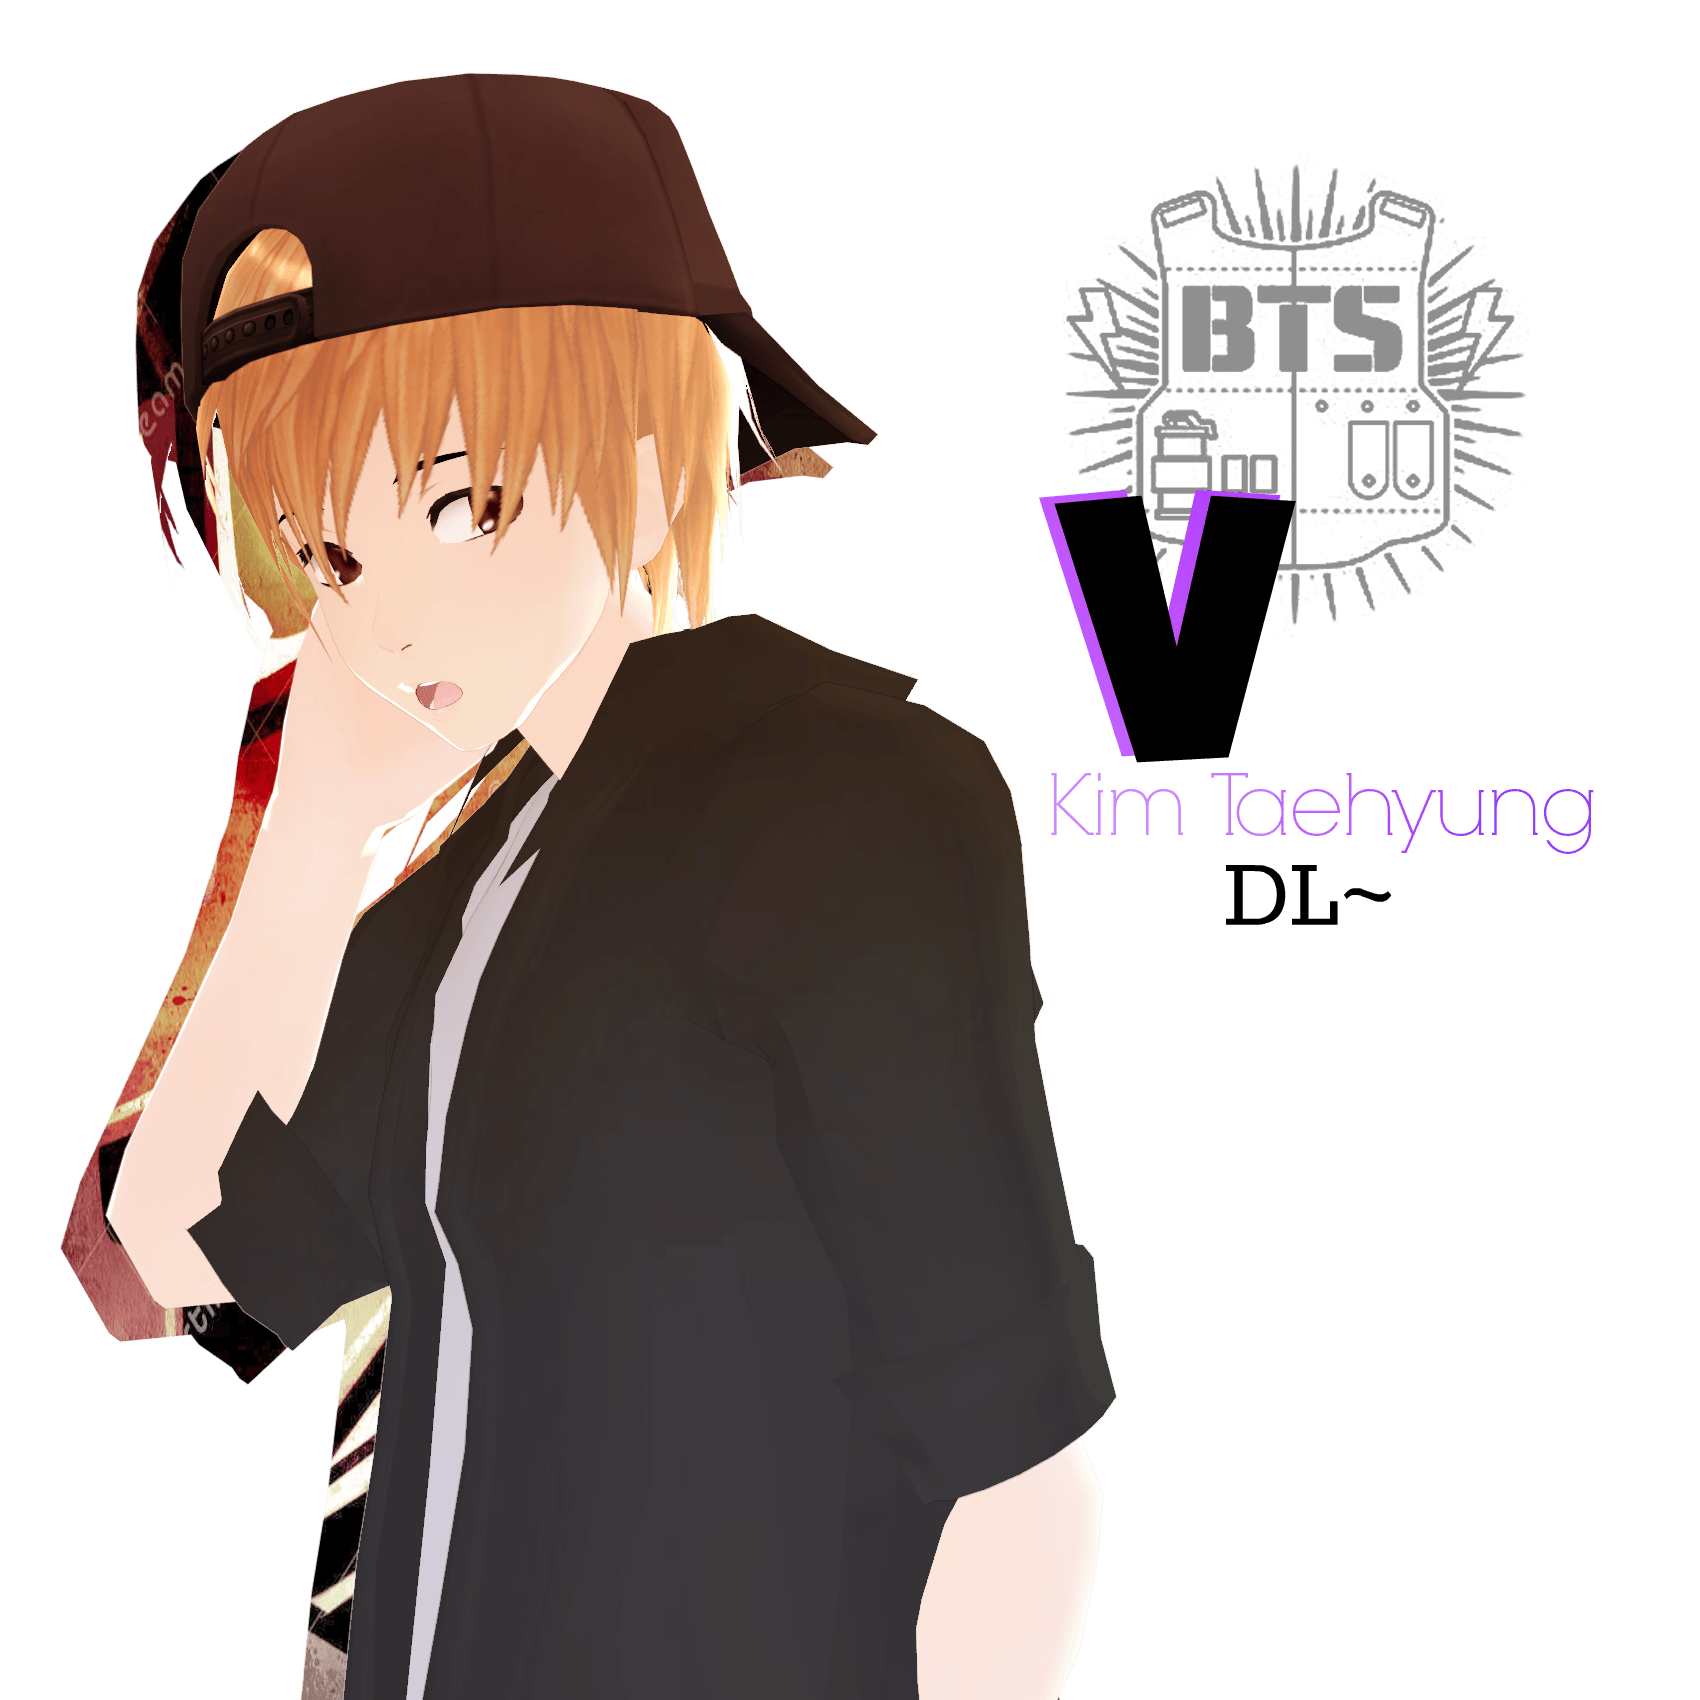 Bts Anime Wallpapers Top Free Bts Anime Backgrounds Wallpaperaccess